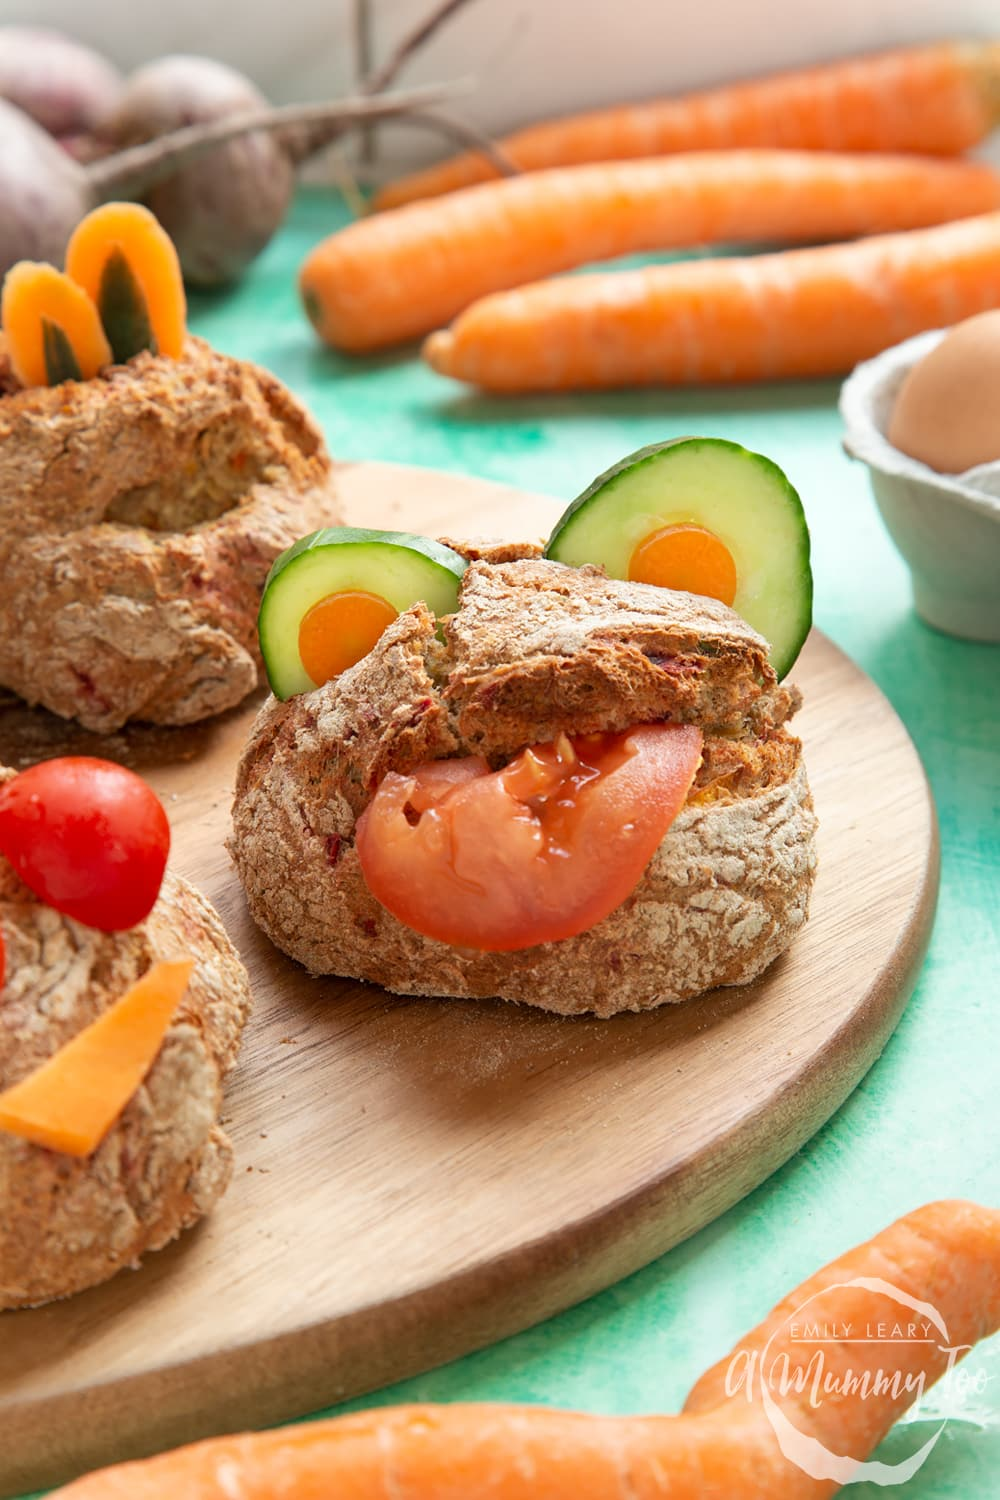 Vegetable soda bread rolls recipe - rolls arranged on a board, each decorated with vegetable slices to look like monsters.